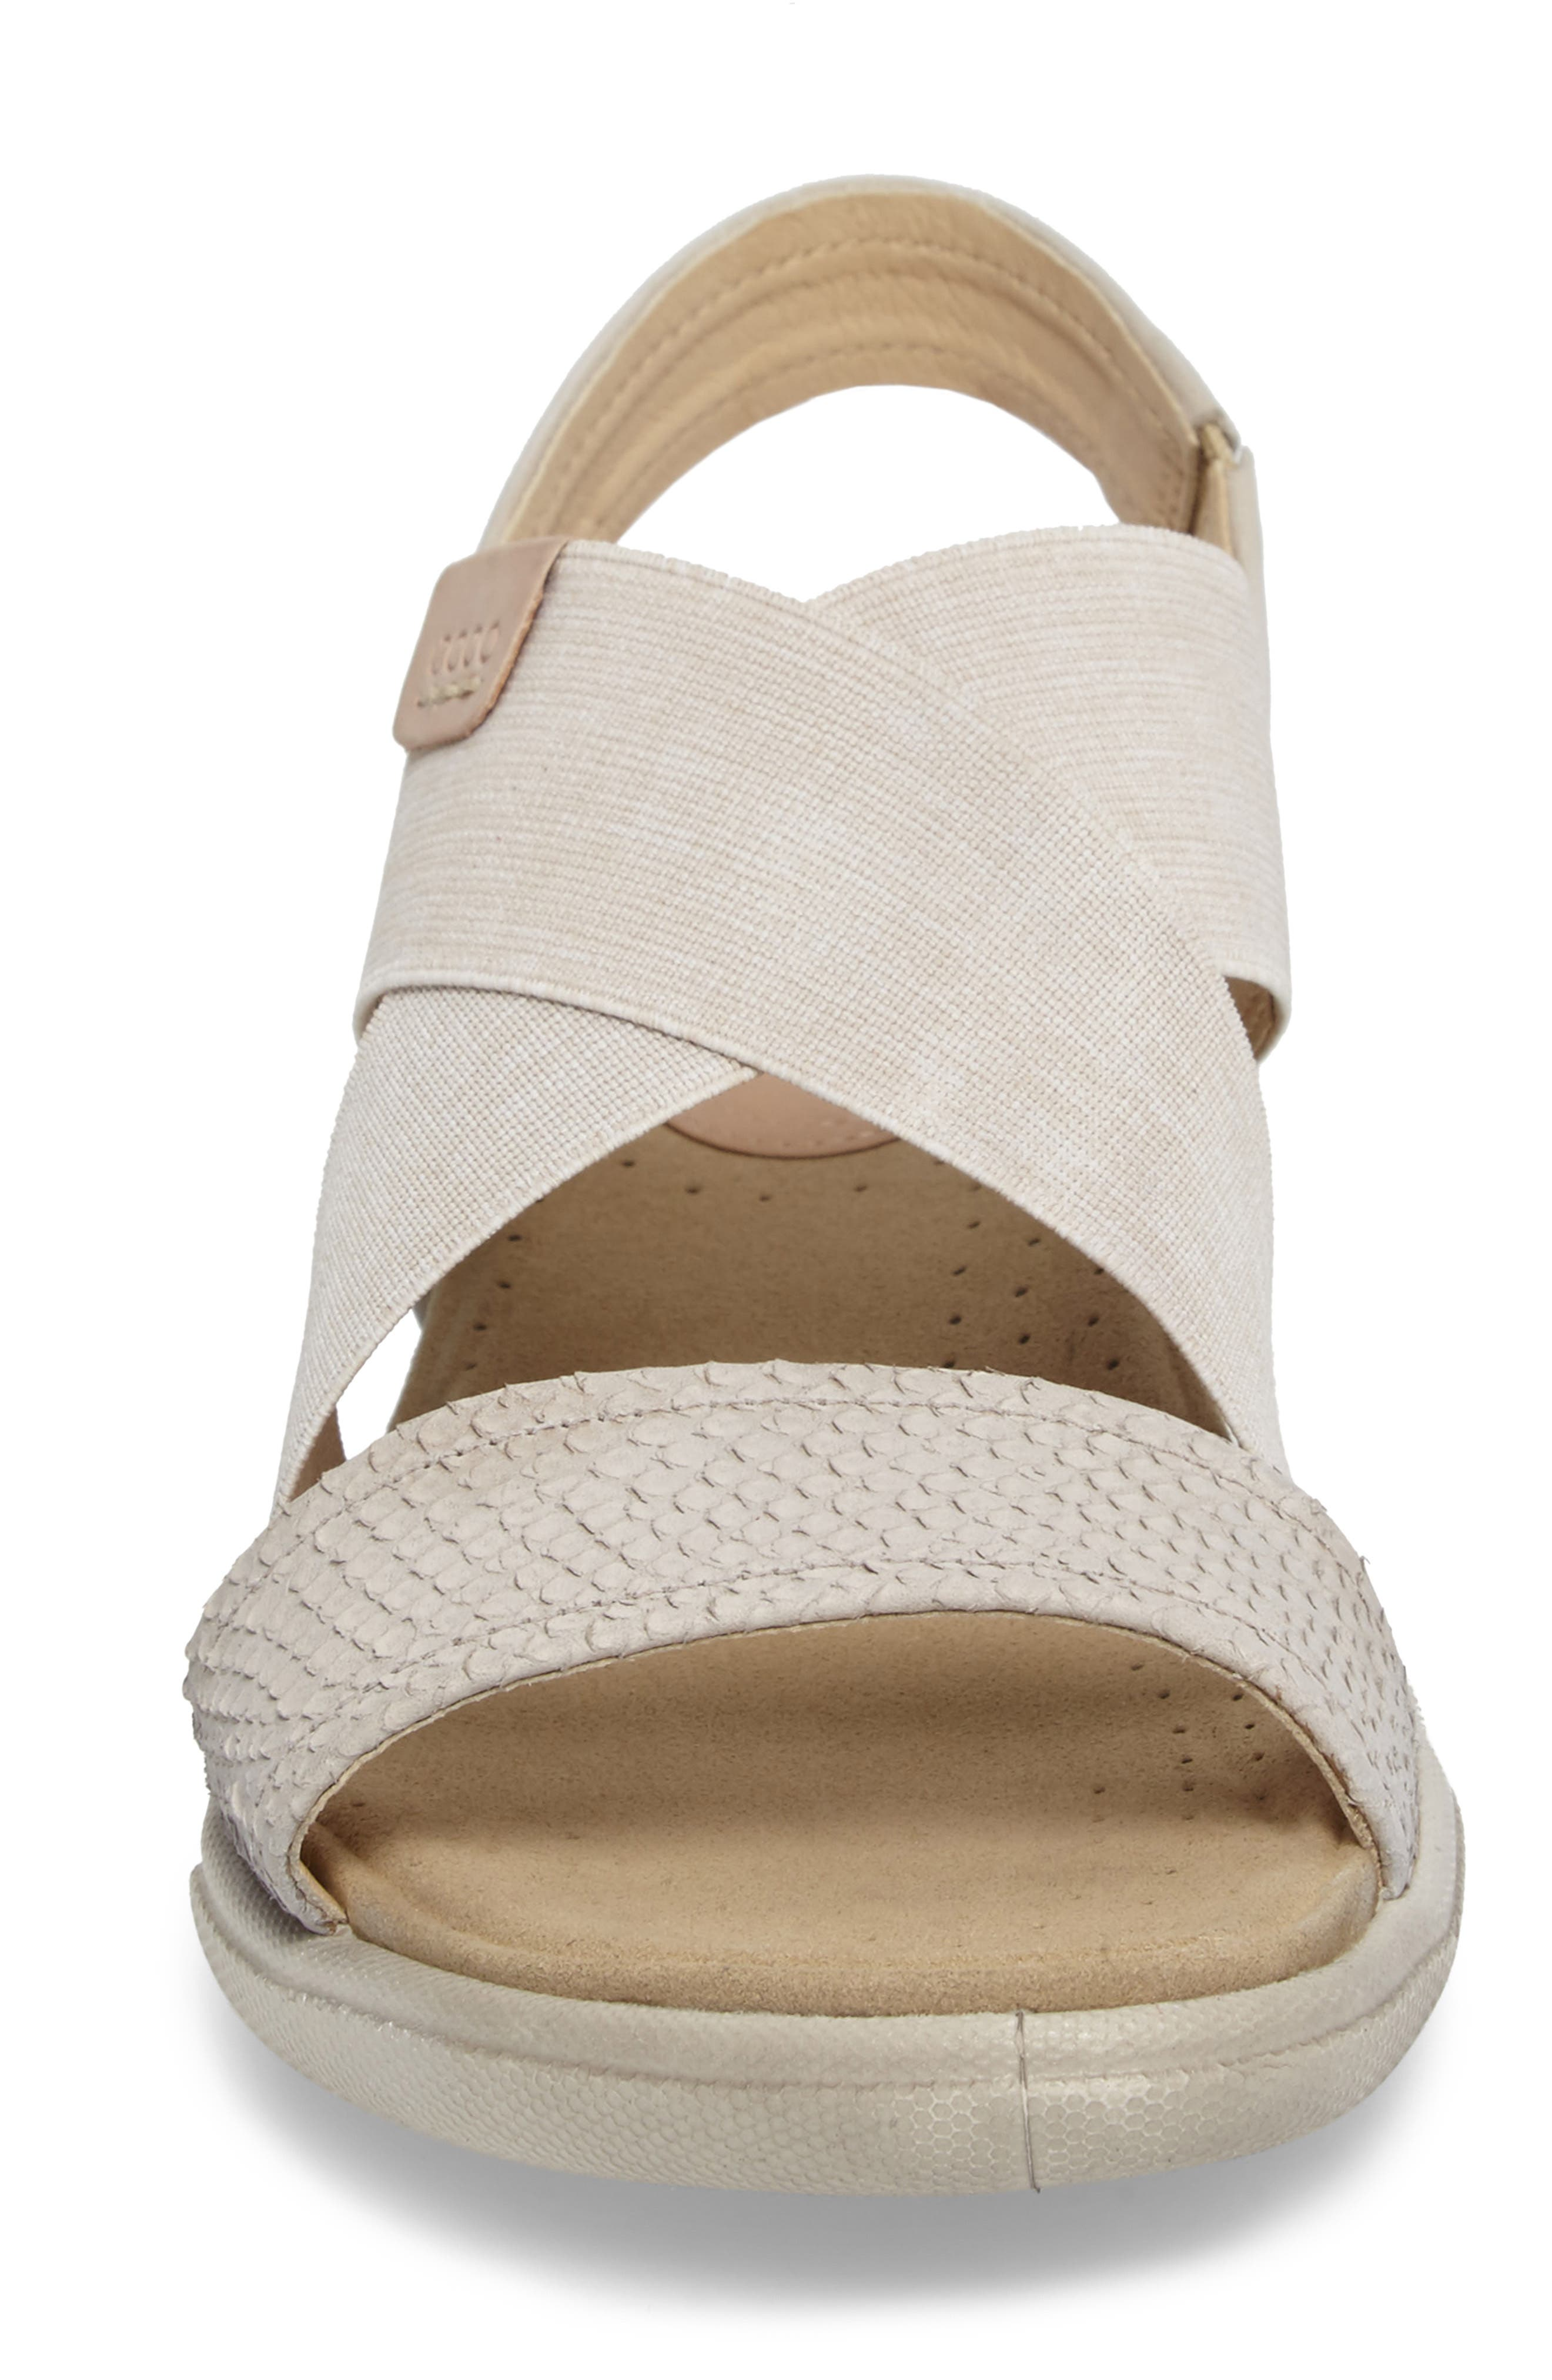 Damara Cross-Strap Sandal,                             Alternate thumbnail 28, color,